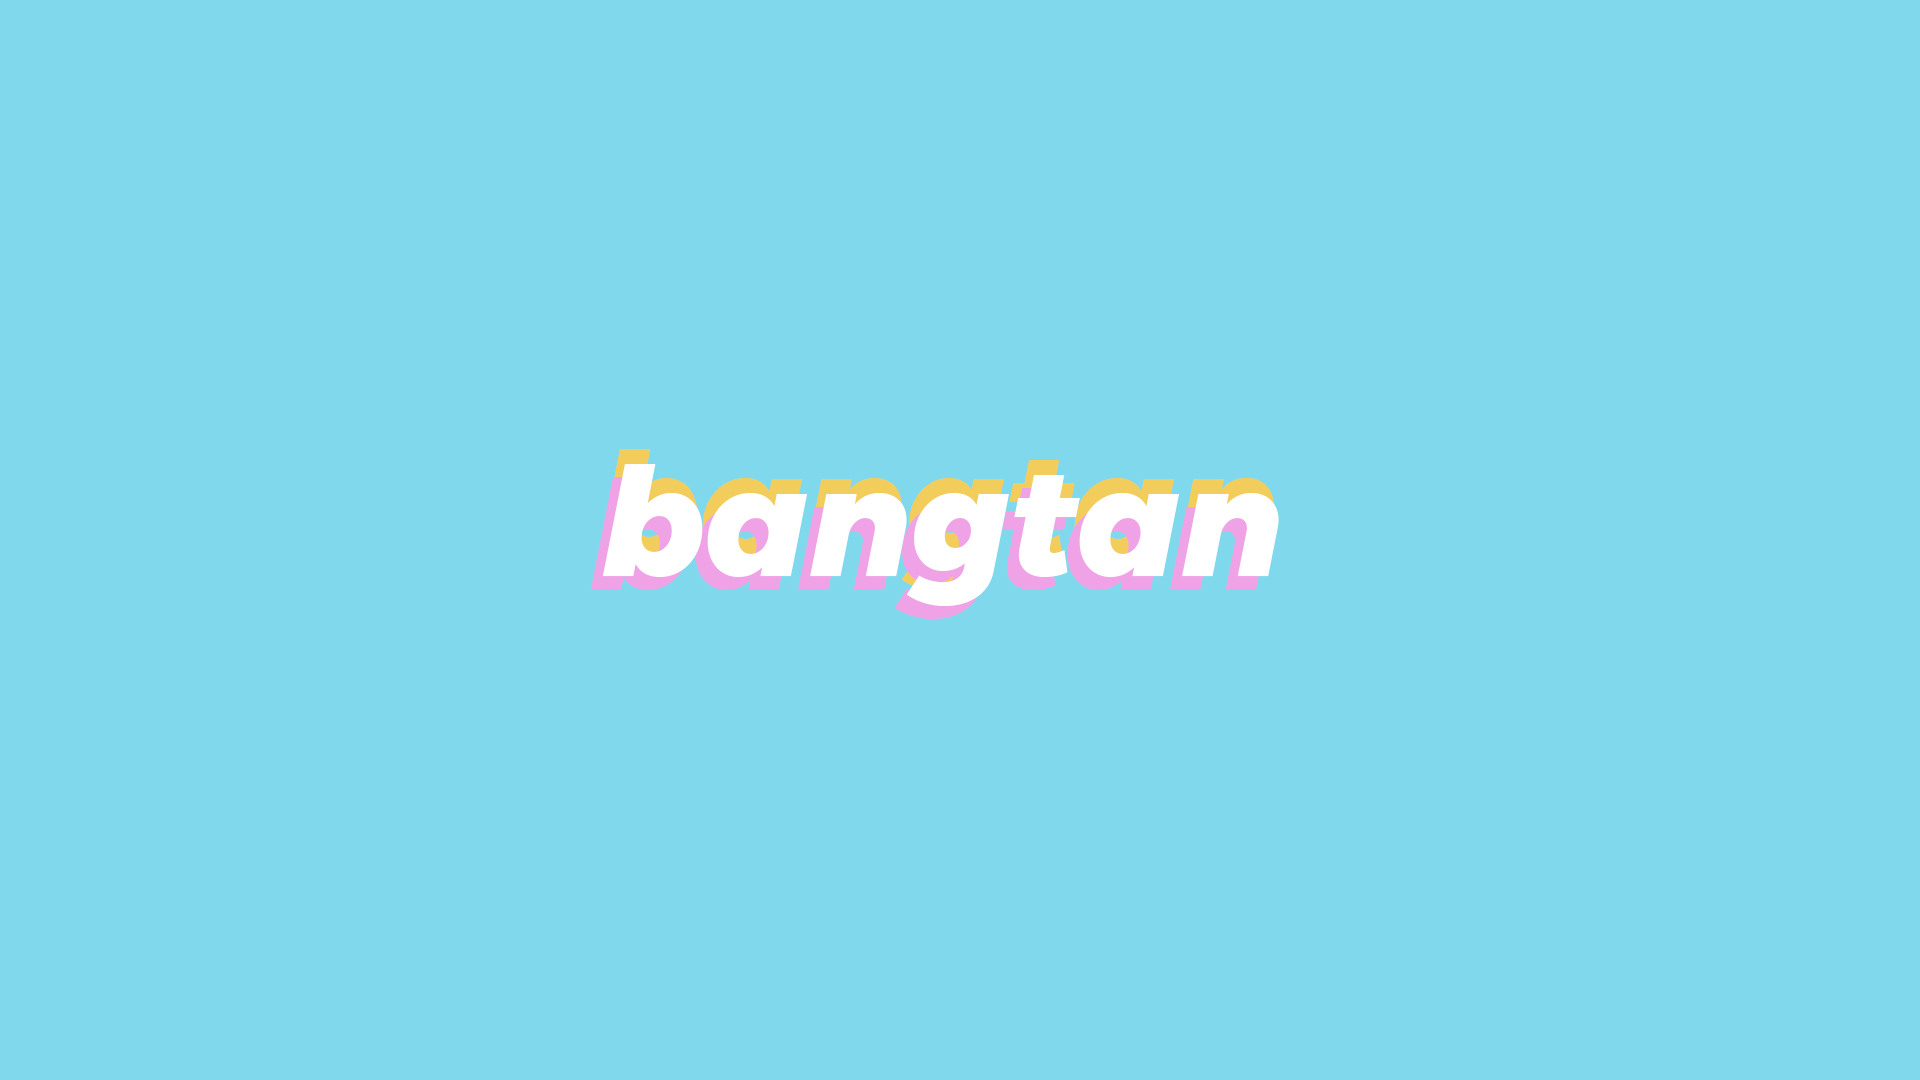 Stunning Bts Aesthetic Wallpaper Desktop images For Free